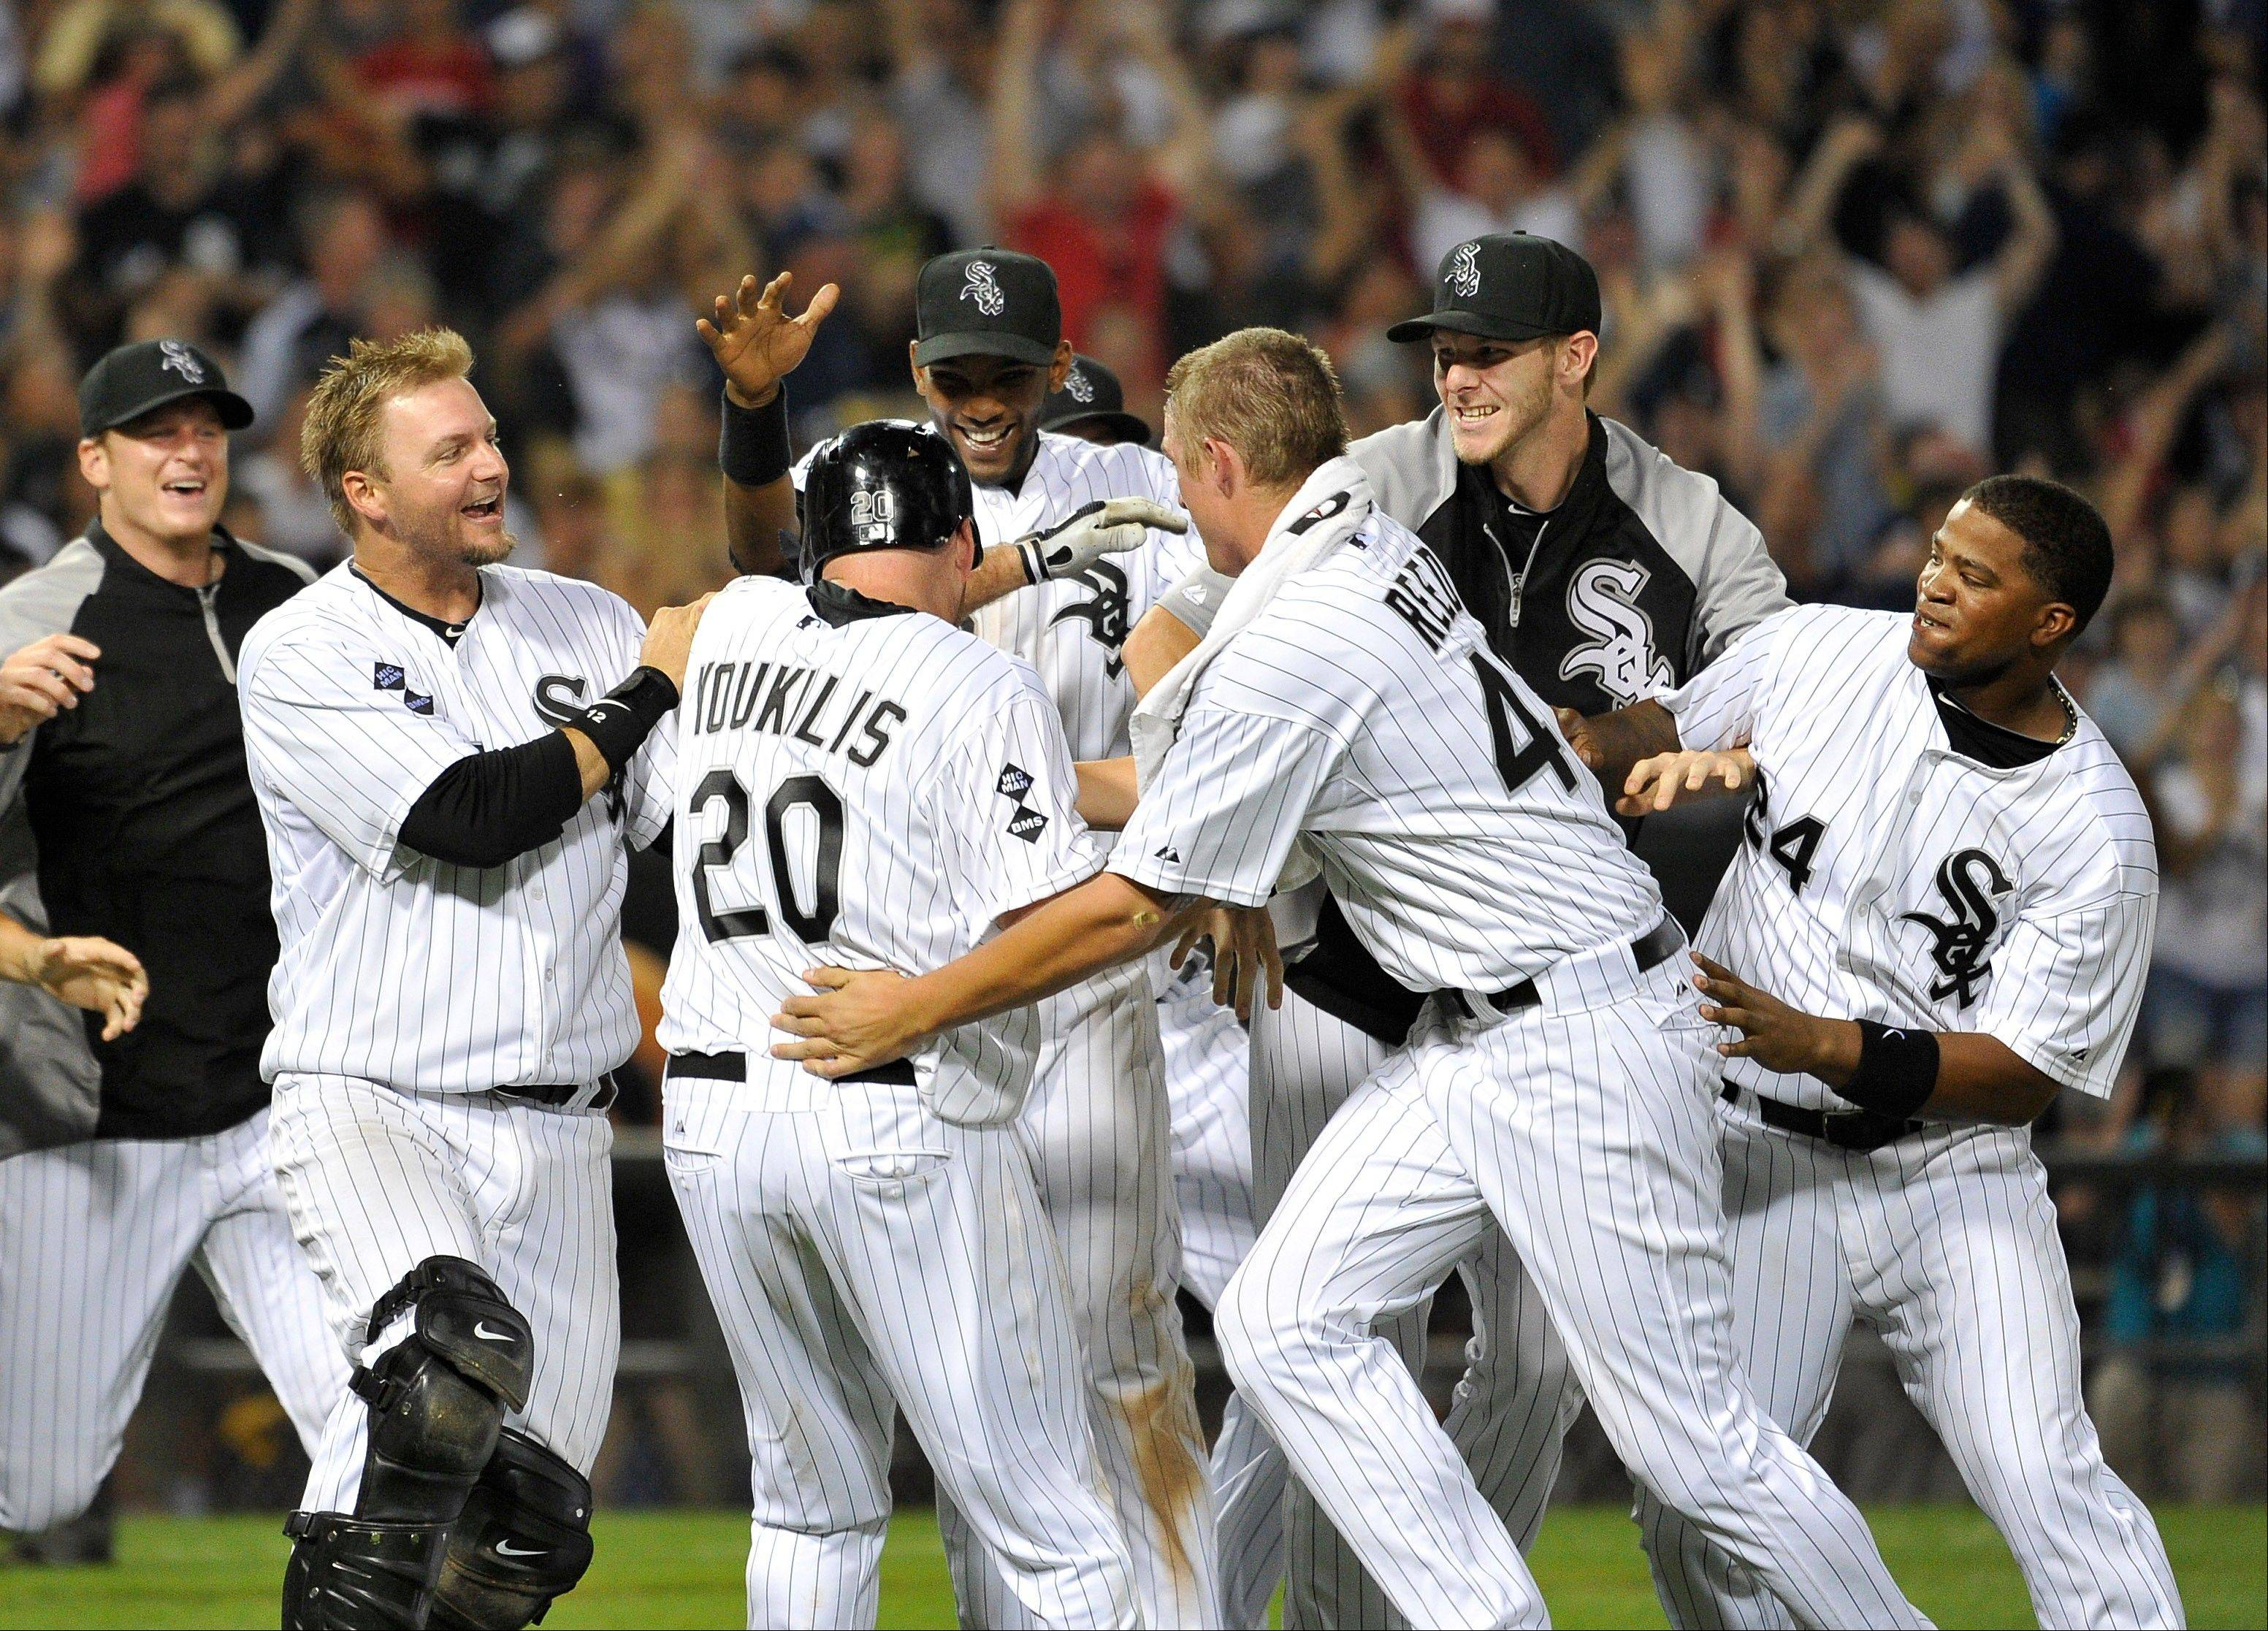 The White Sox' Kevin Youkilis, middle, is mobbed by teammates after hitting a game-winning single, scoring Alejandro De Aza in the 10th inning Wednesday night at U.S. Cellular Field.